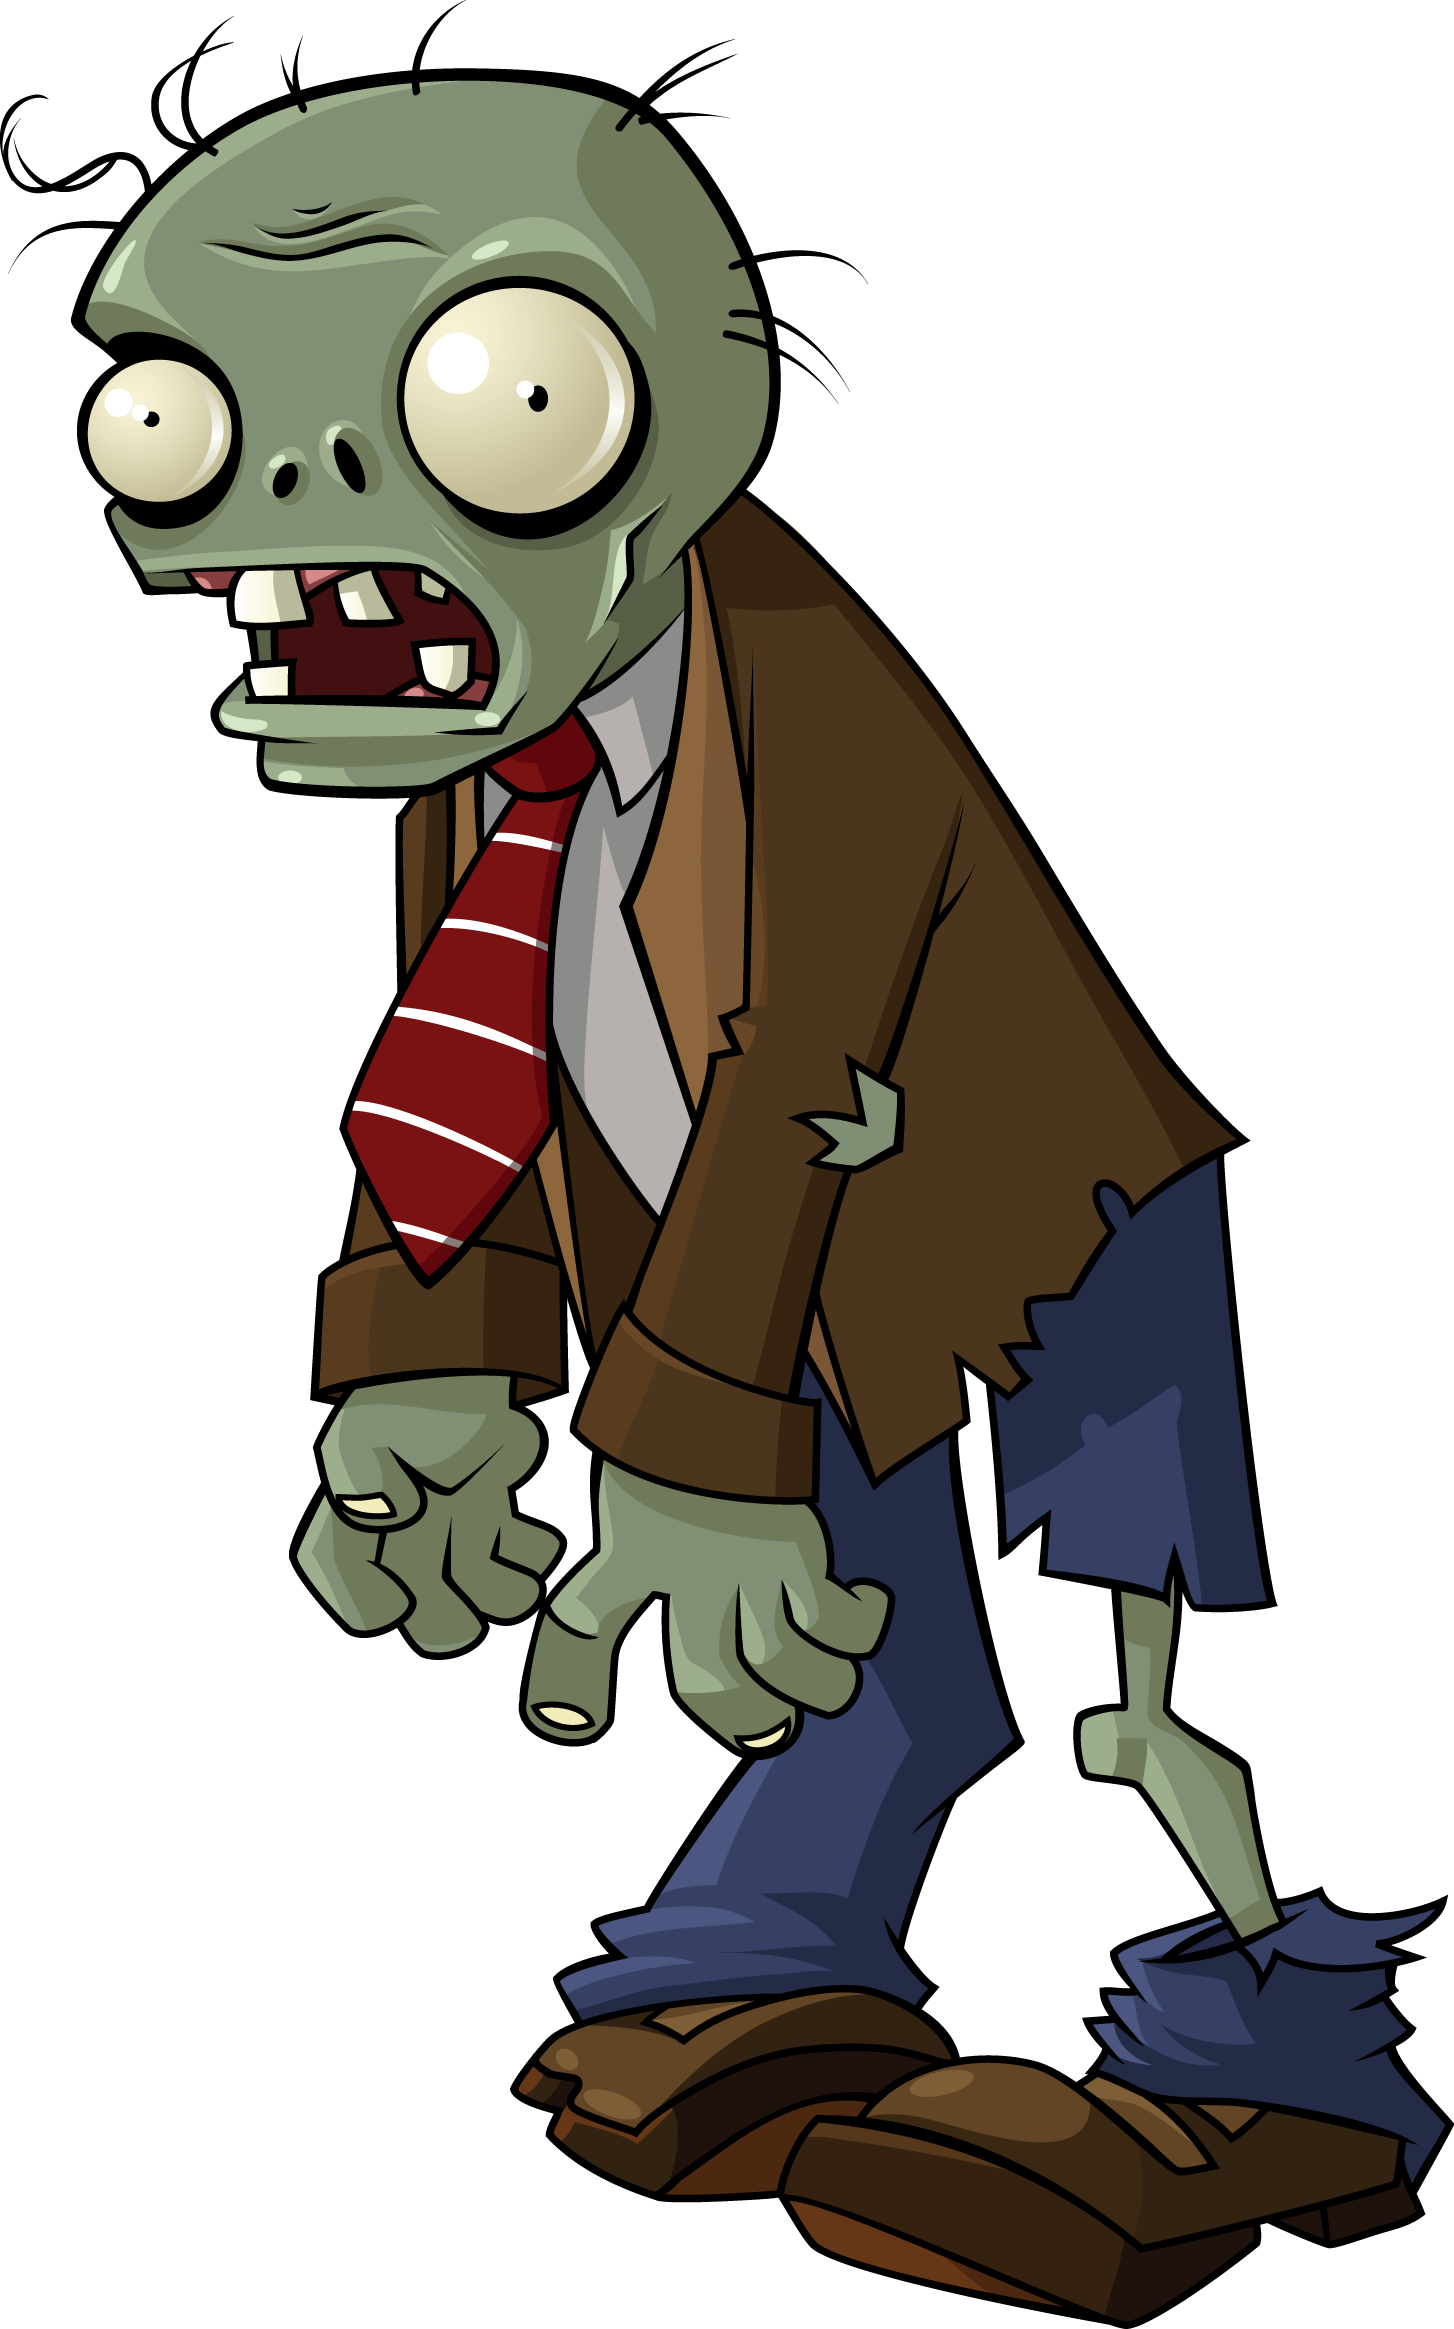 Zombies (Plants vs Zombies) | Villains Wiki | FANDOM powered by Wikia